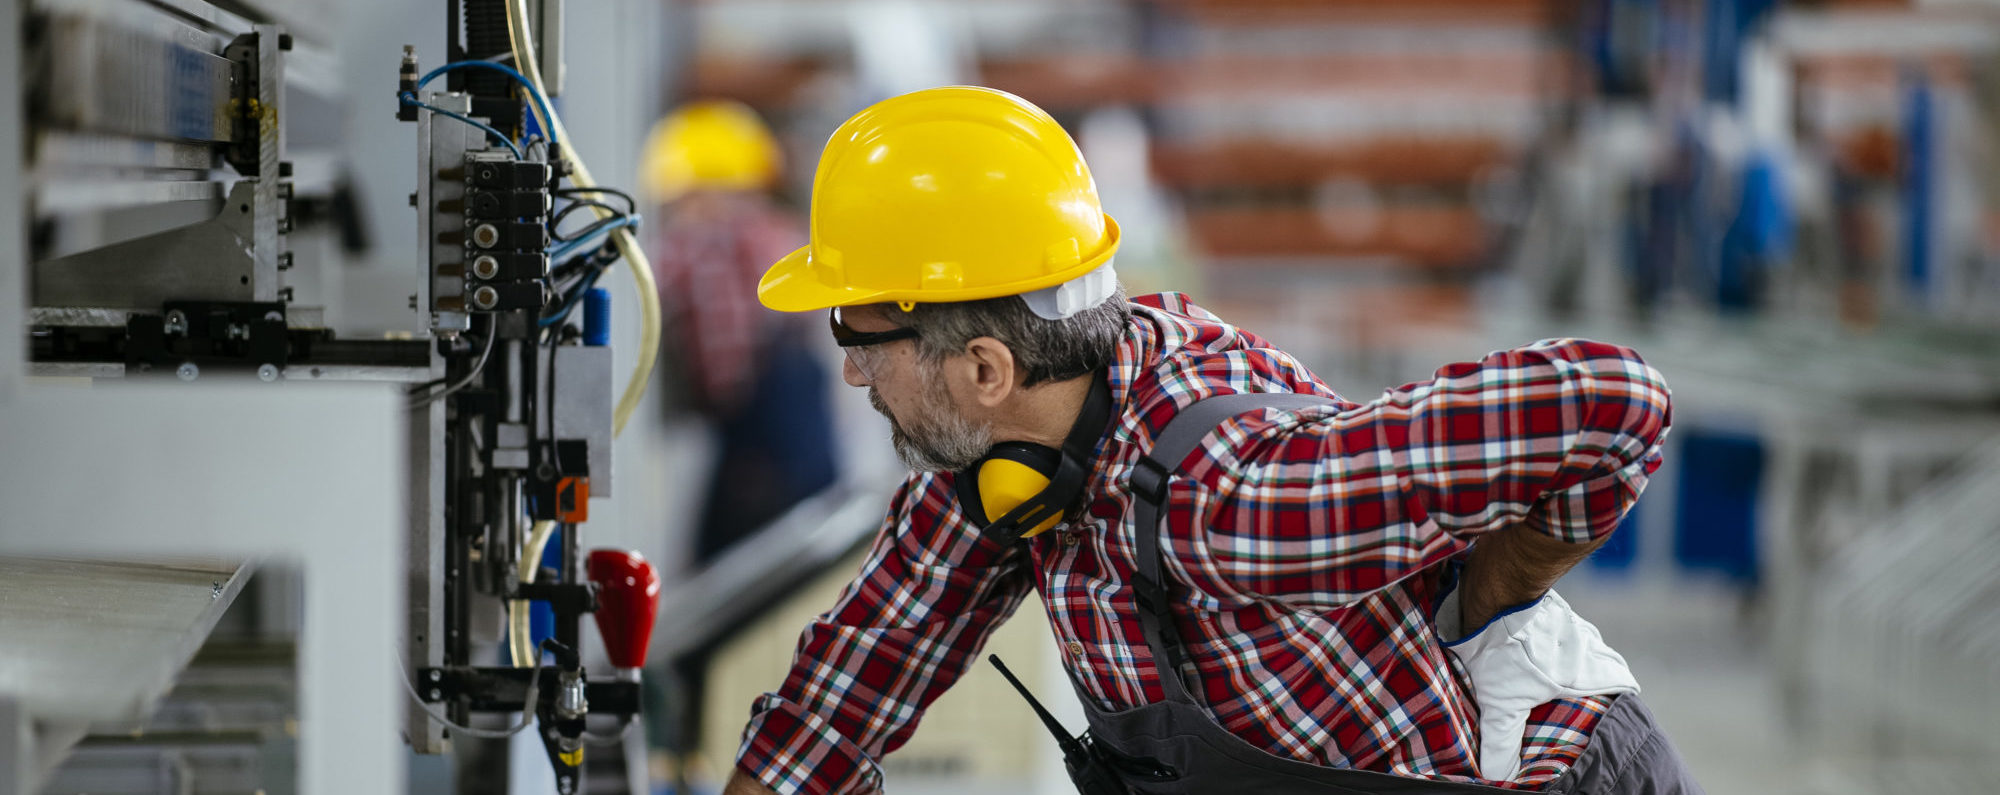 Factory worker with painful back injury stock photo